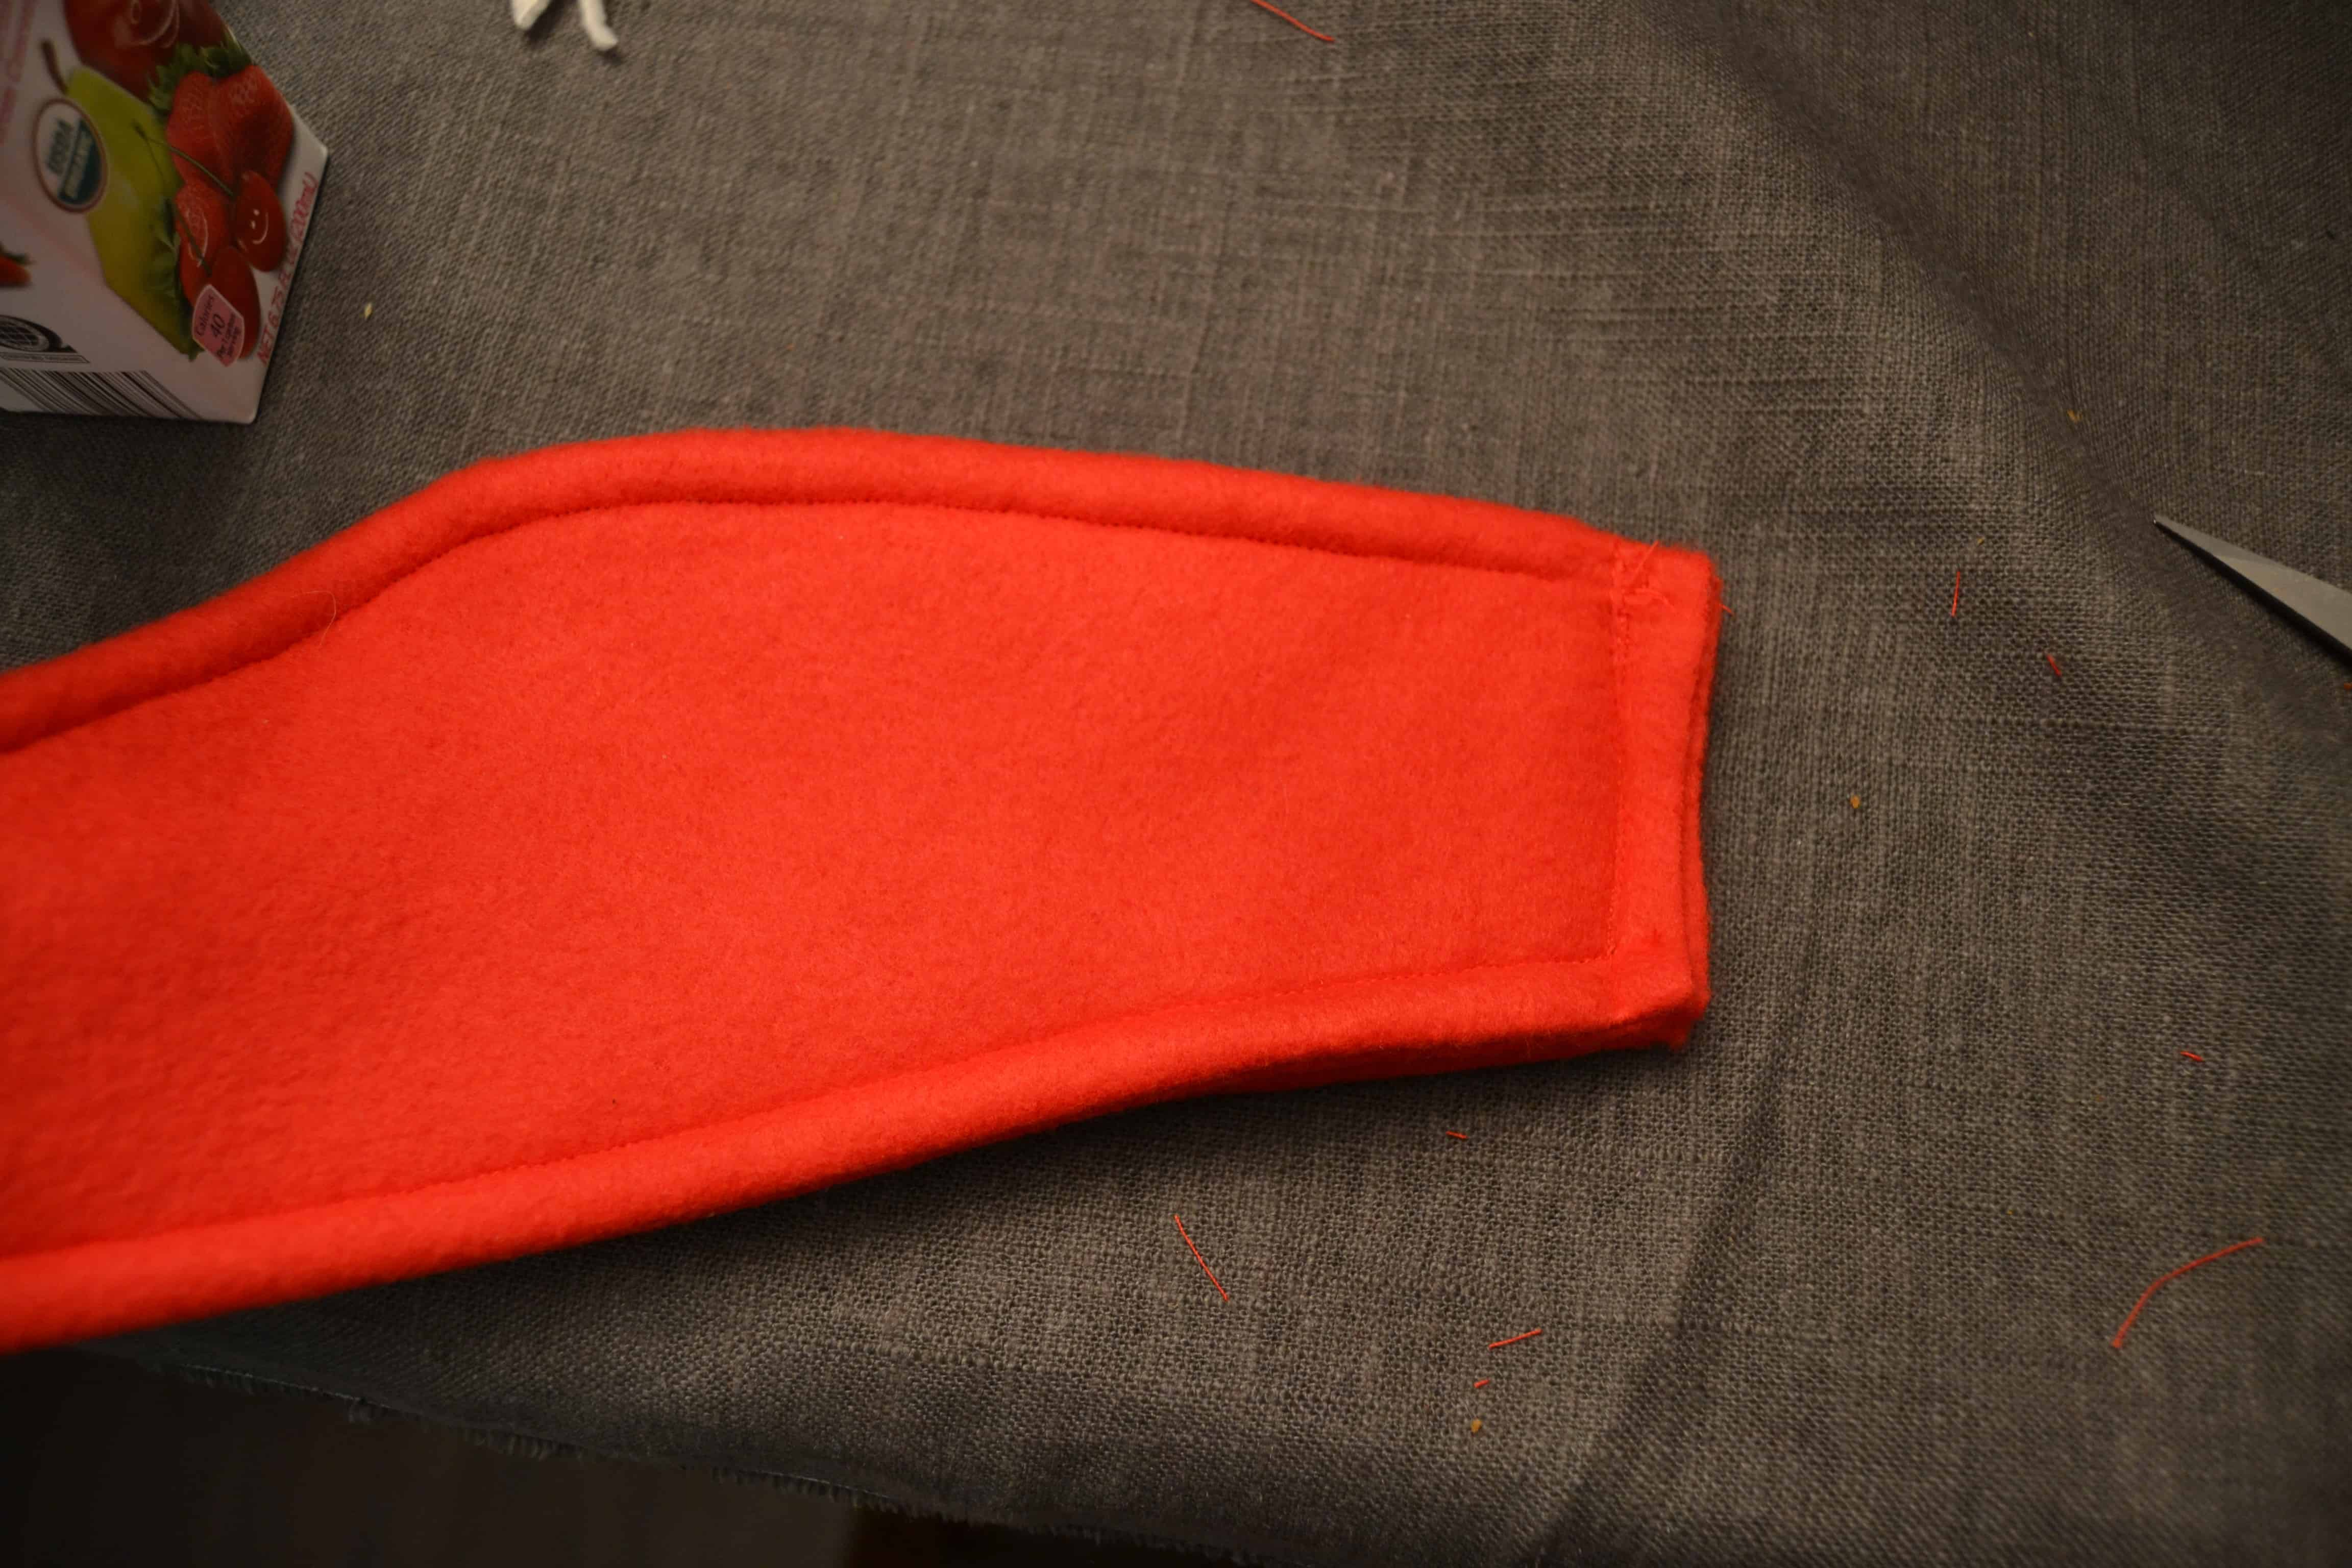 the end of the fleece earwarmer headband sewn together